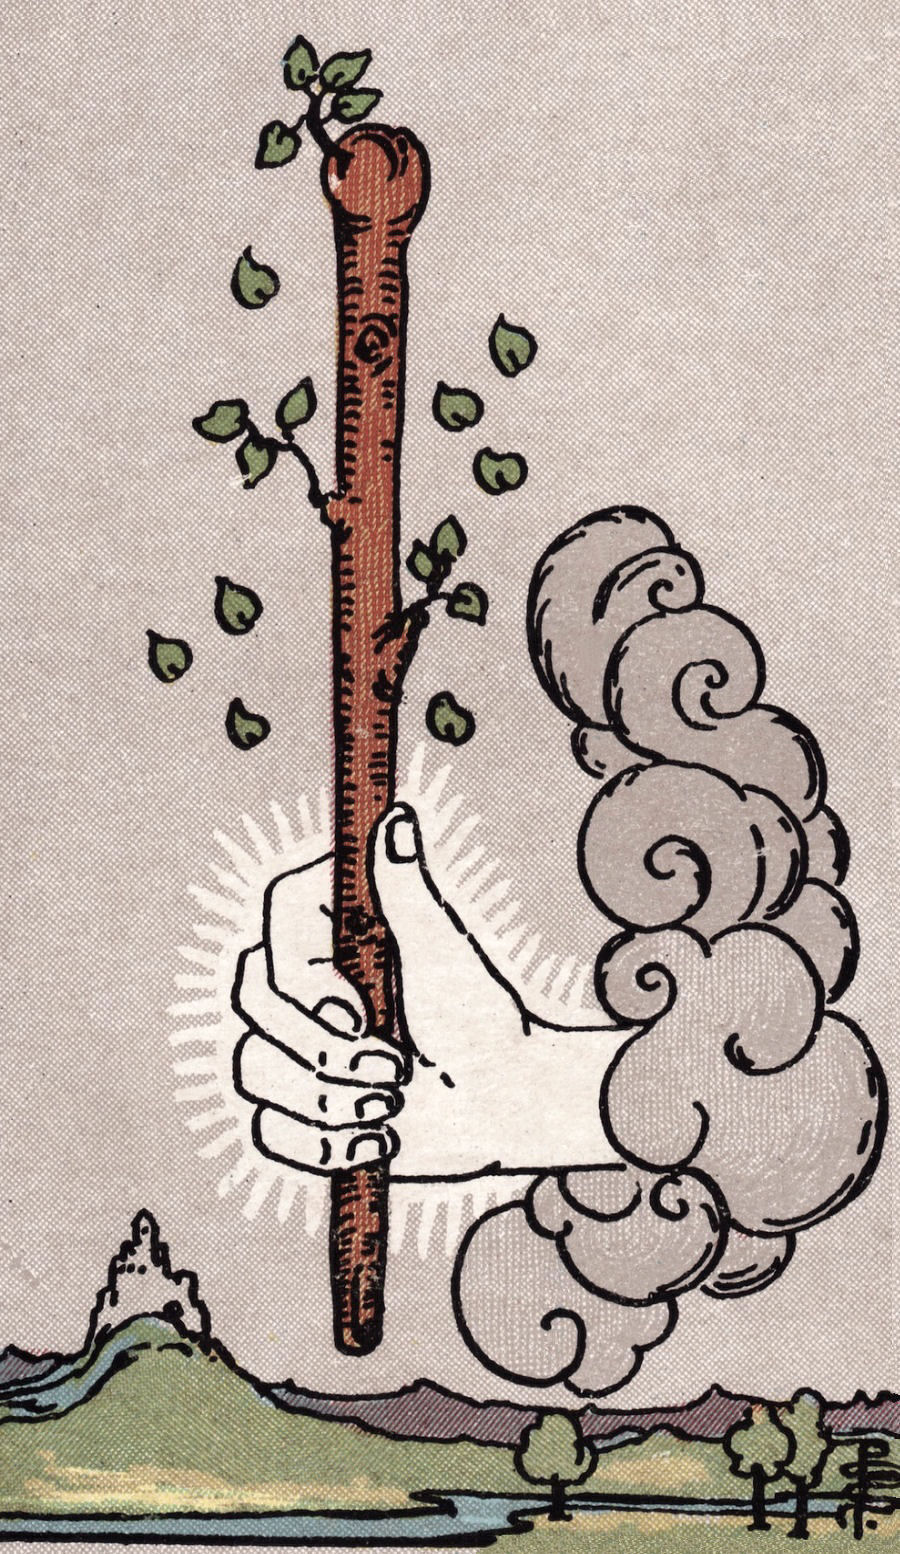 The Ace of Wands - This card is a) a phallic symbol sprouting leaves and b) a representation of an influx of sexual energy. It's the electricity in the air when you're around your crush, the general creative feeling you get at the beginning of a new project. This sexual feeling can be amorphous and channeled into many aspects of our lives. Sexually speaking, it's an encouraging sign to get creative and involved with our sexual expression.